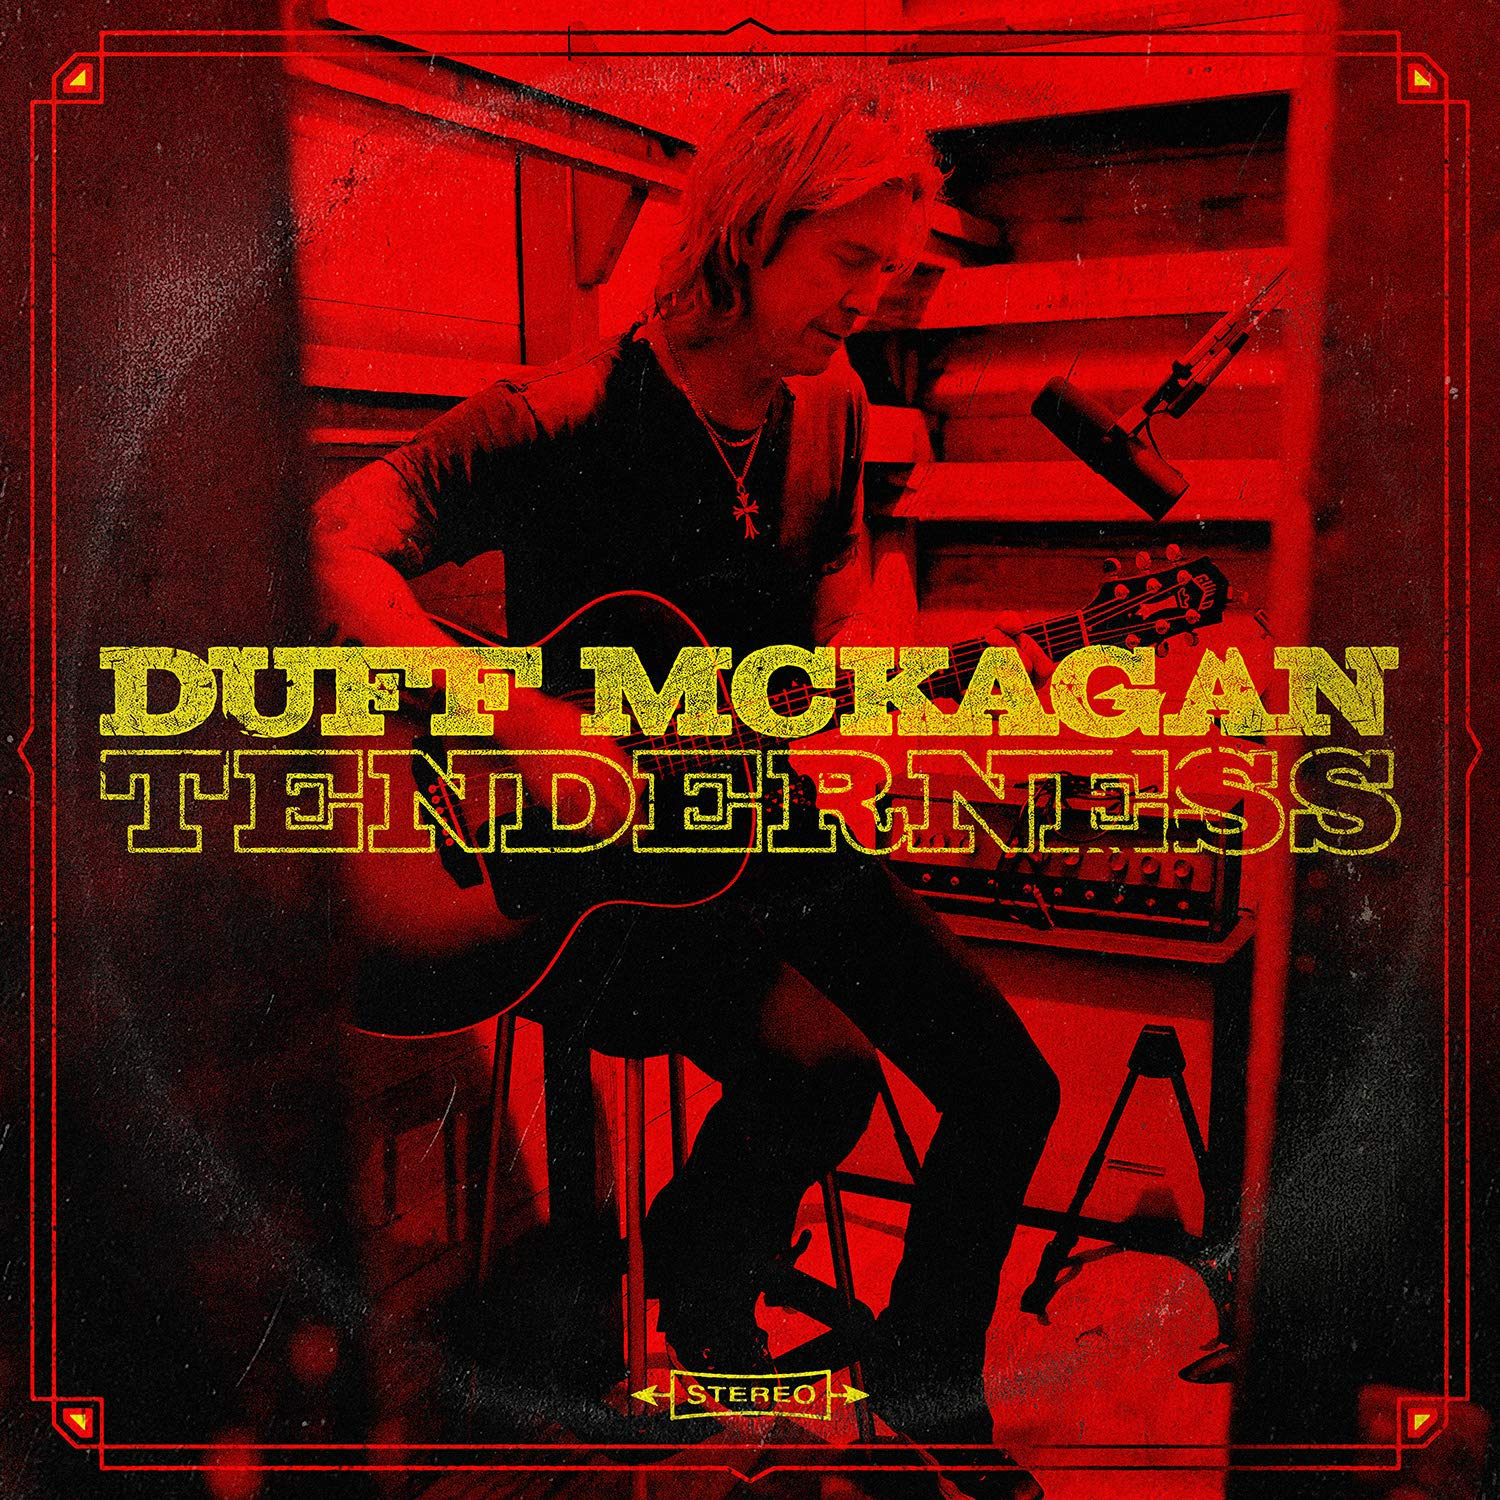 CD Shop - MCKAGAN DUFF TENDERNESS